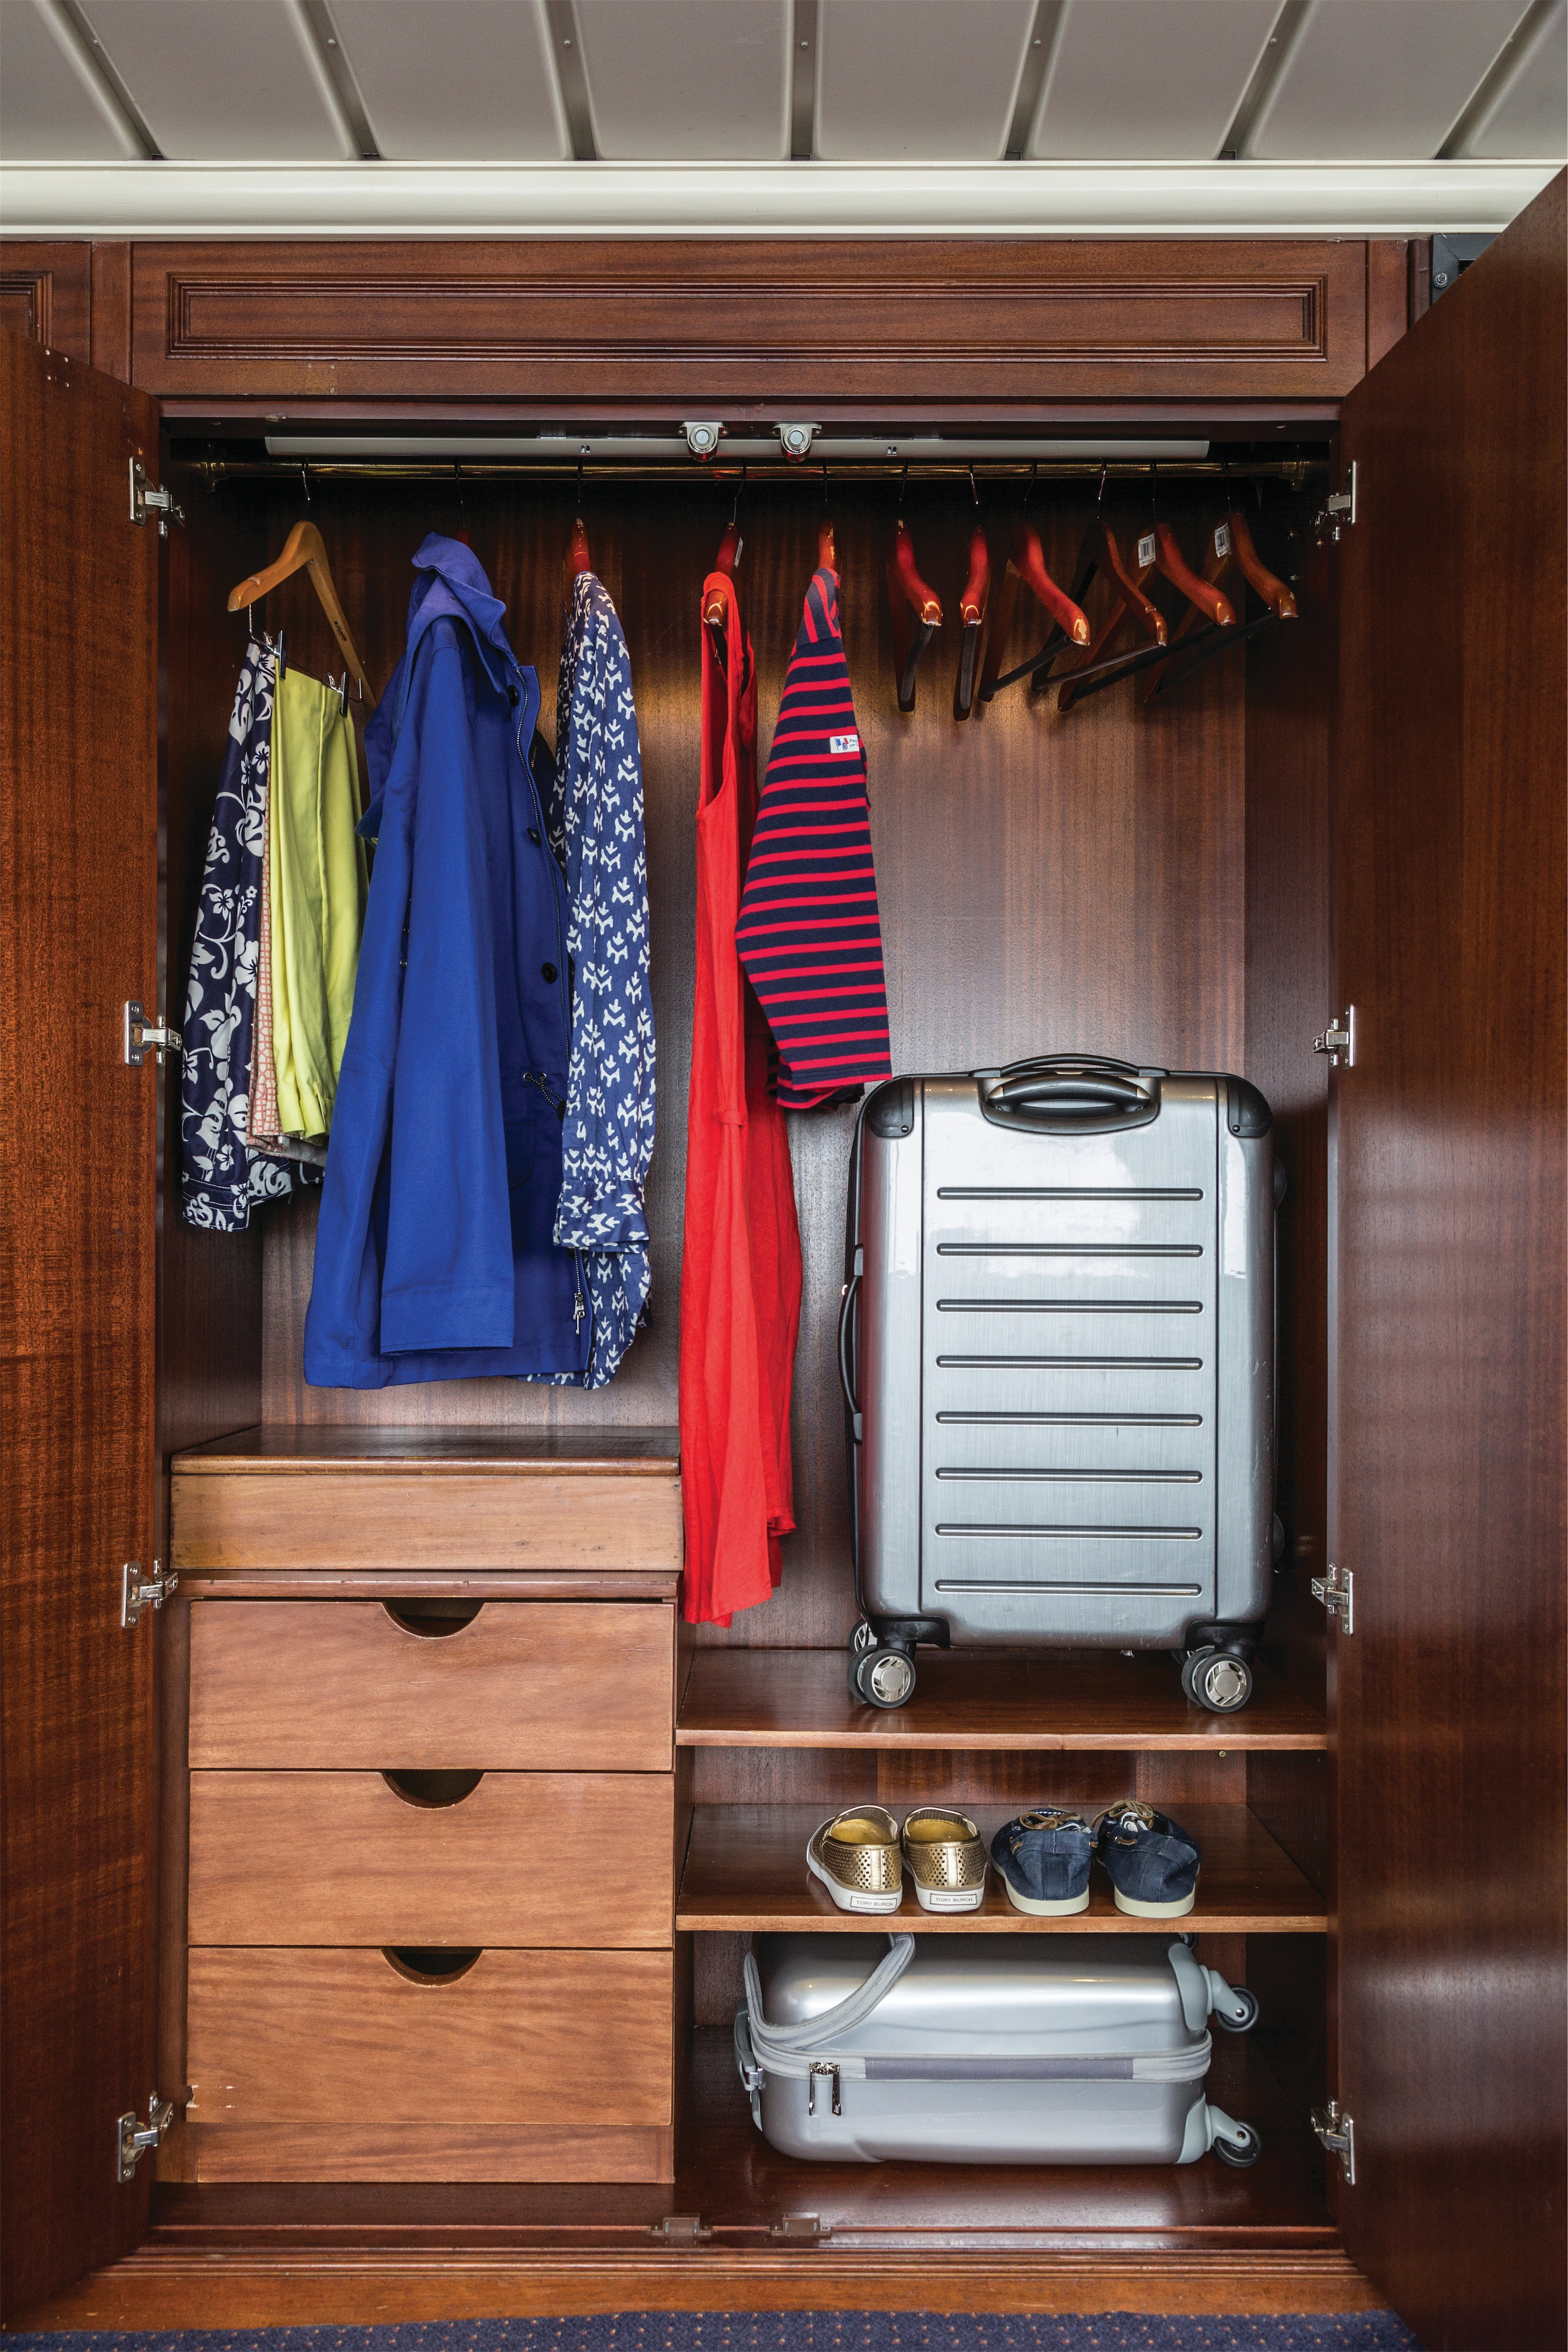 Lindblad Expeditions National Geographic Islander Accommodation Category 5 Closet.jpg